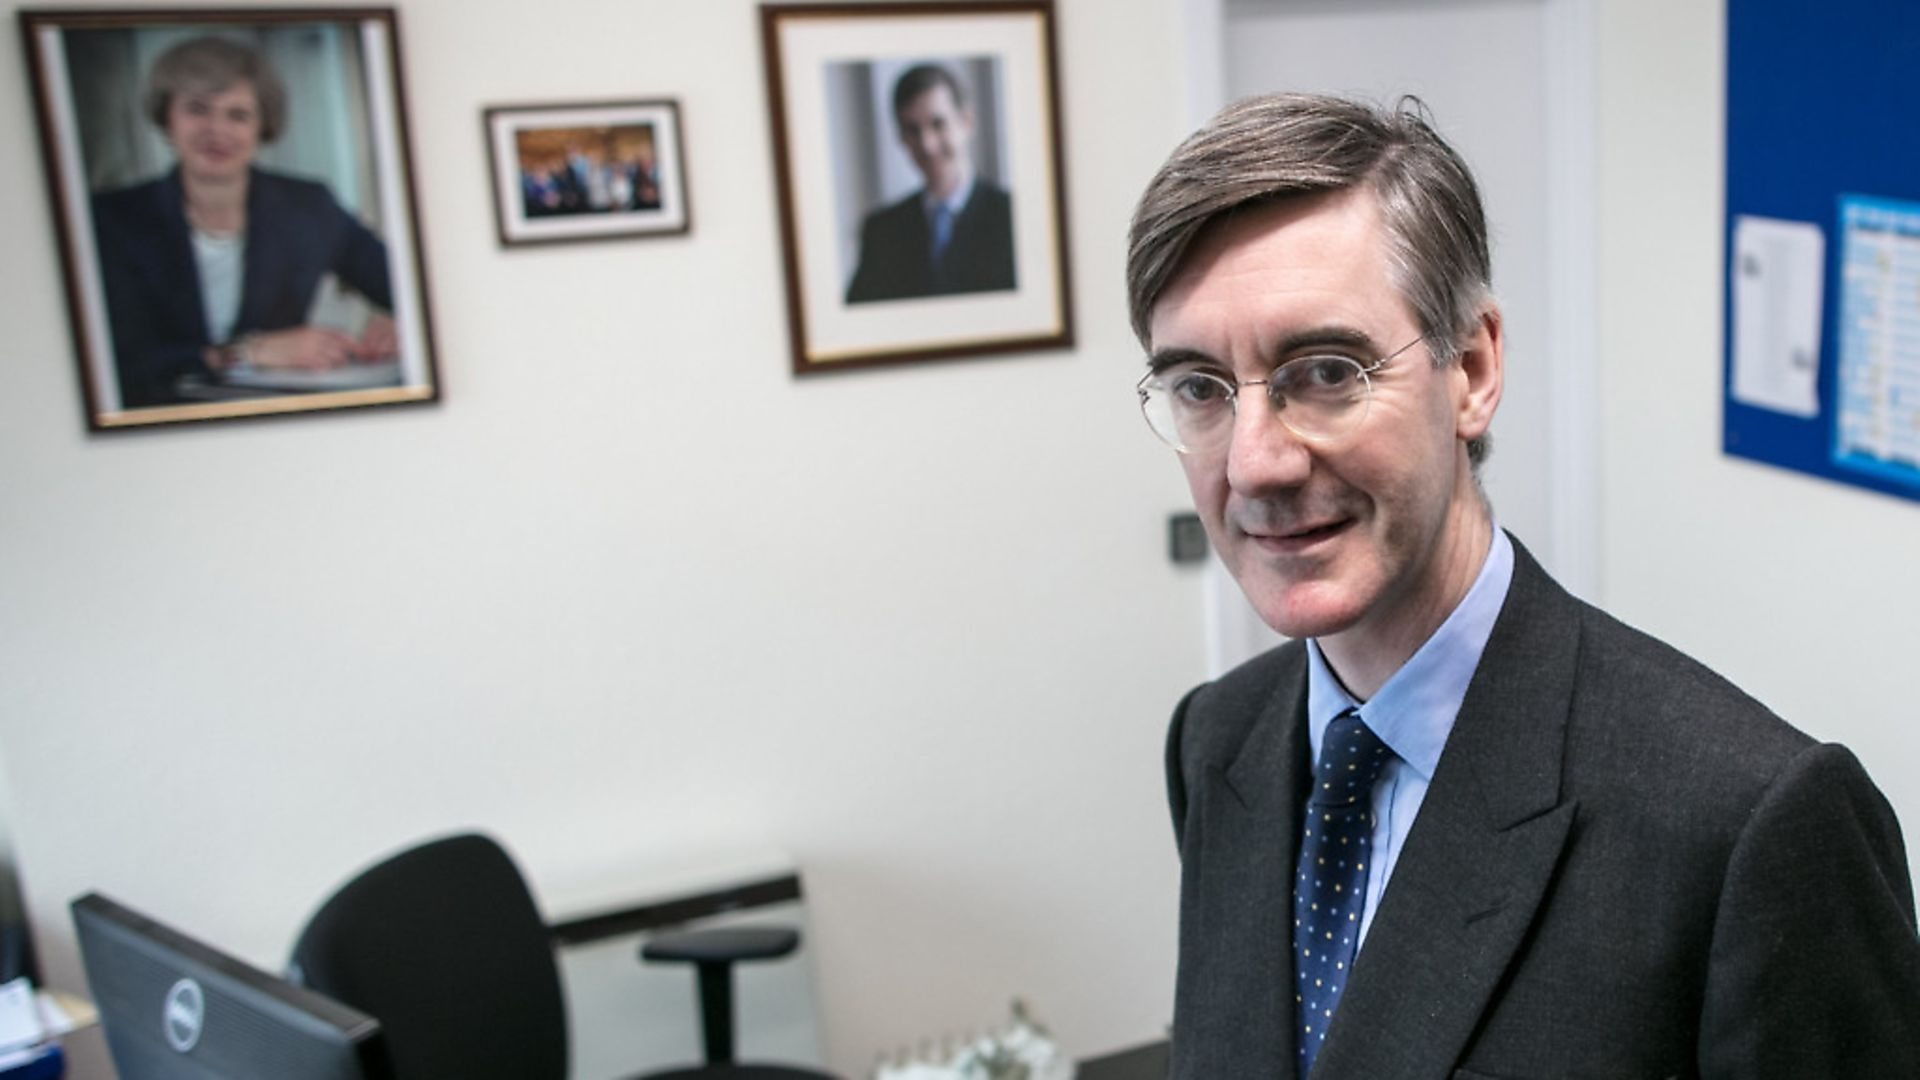 Jacob Rees-Mogg's The Victorians is staggeringly silly, says Charlie Connelly. Photo: Matt Cardy/Getty - Credit: Getty Images